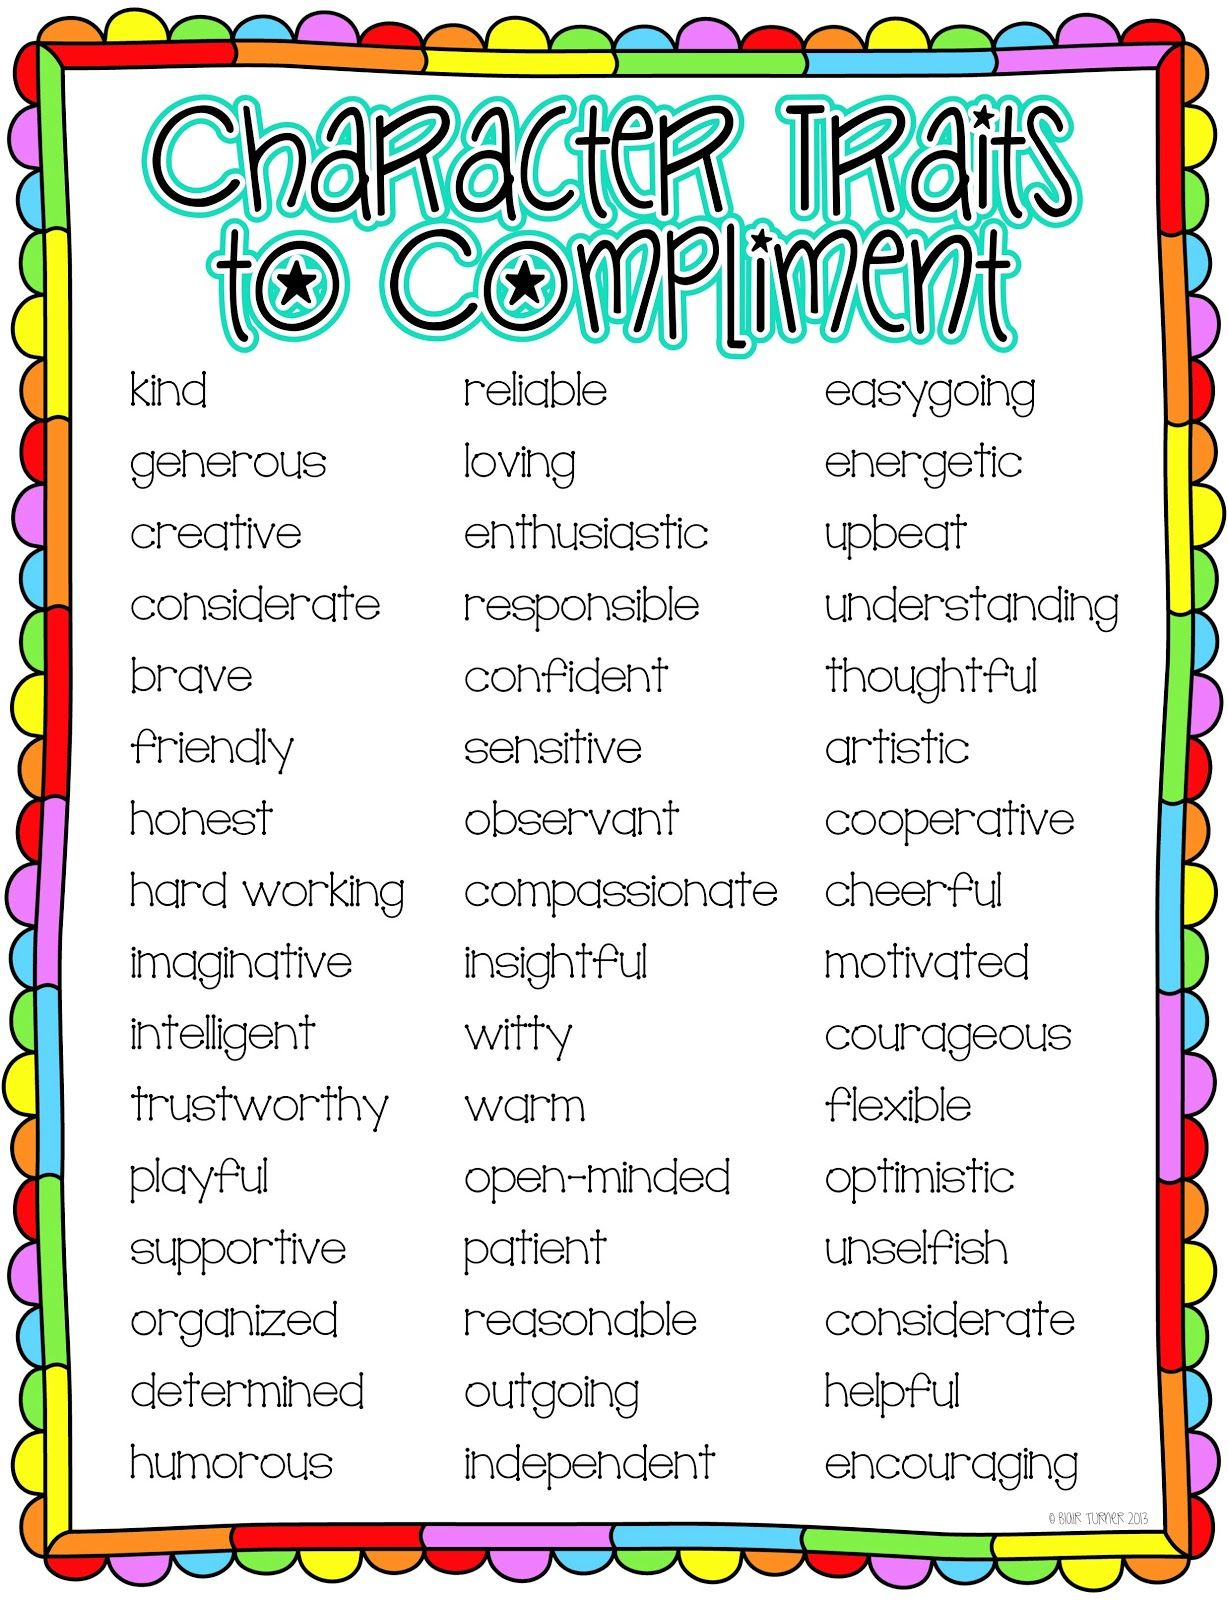 best images about character traits character 17 best images about character traits character education citizenship and classroom behavior